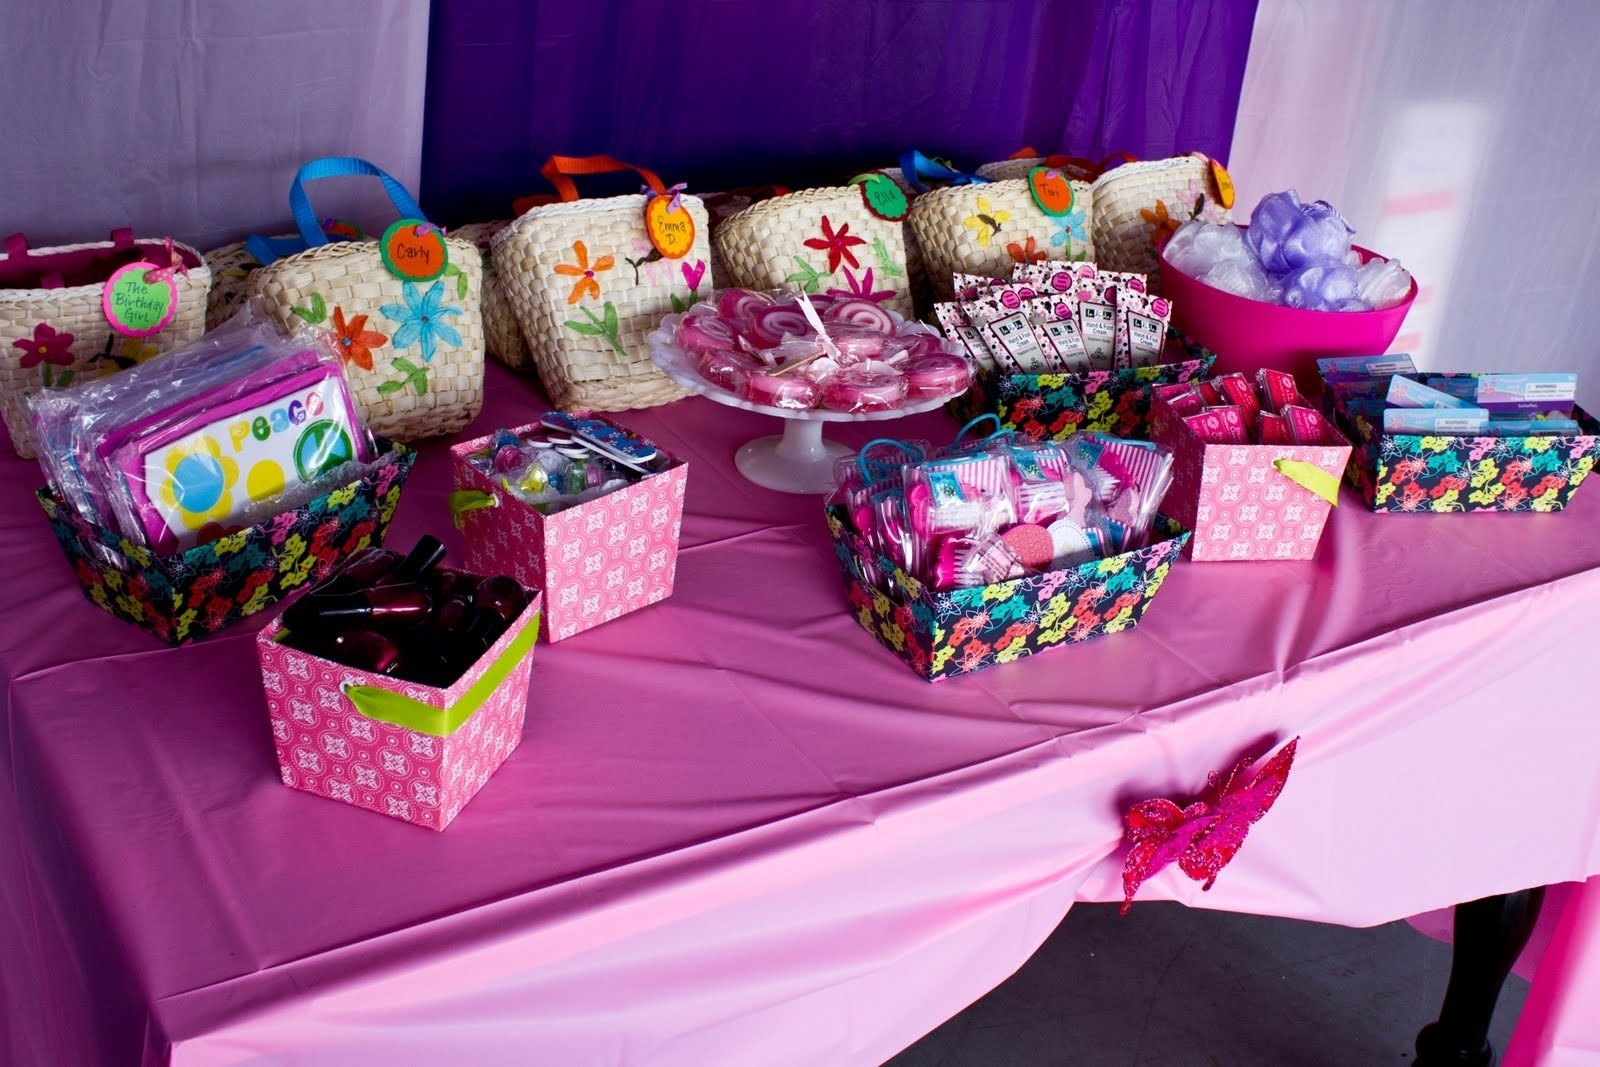 10 Most Popular Spa Party Ideas For Little Girls girls spa birthday party ideas pool design ideas 3 2020